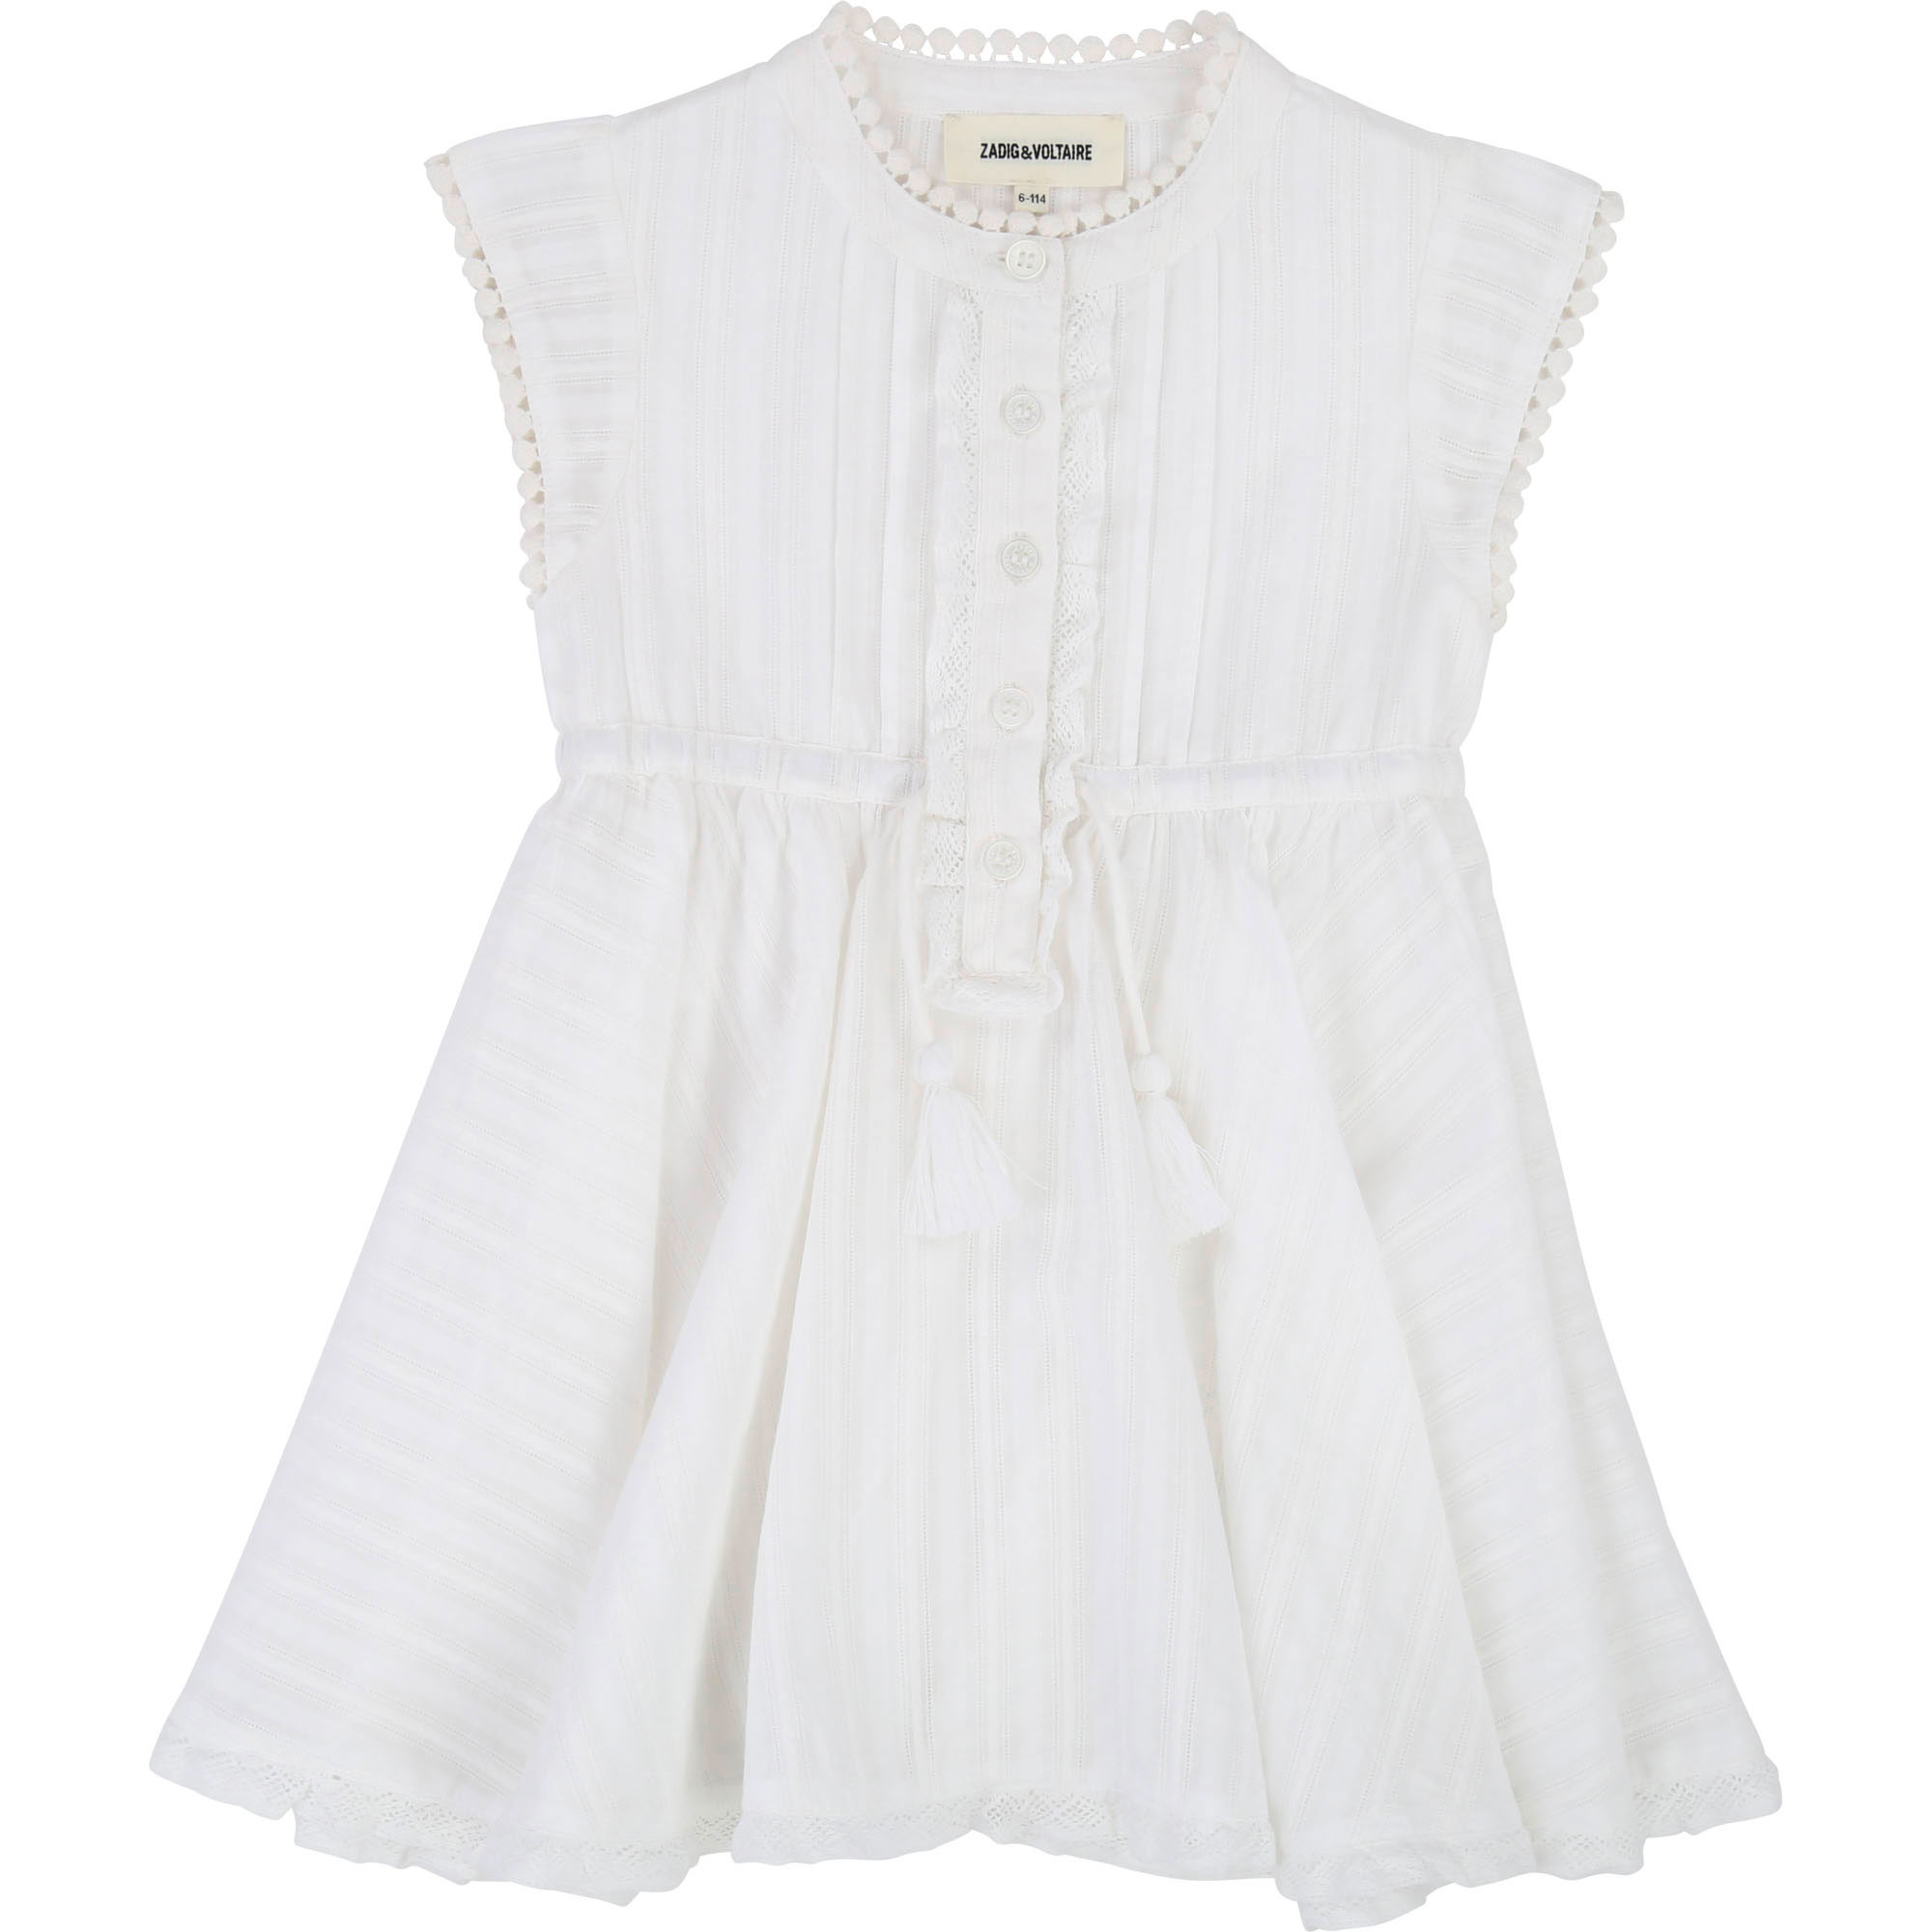 Sleeveless cotton dress ZADIG & VOLTAIRE for UNISEX